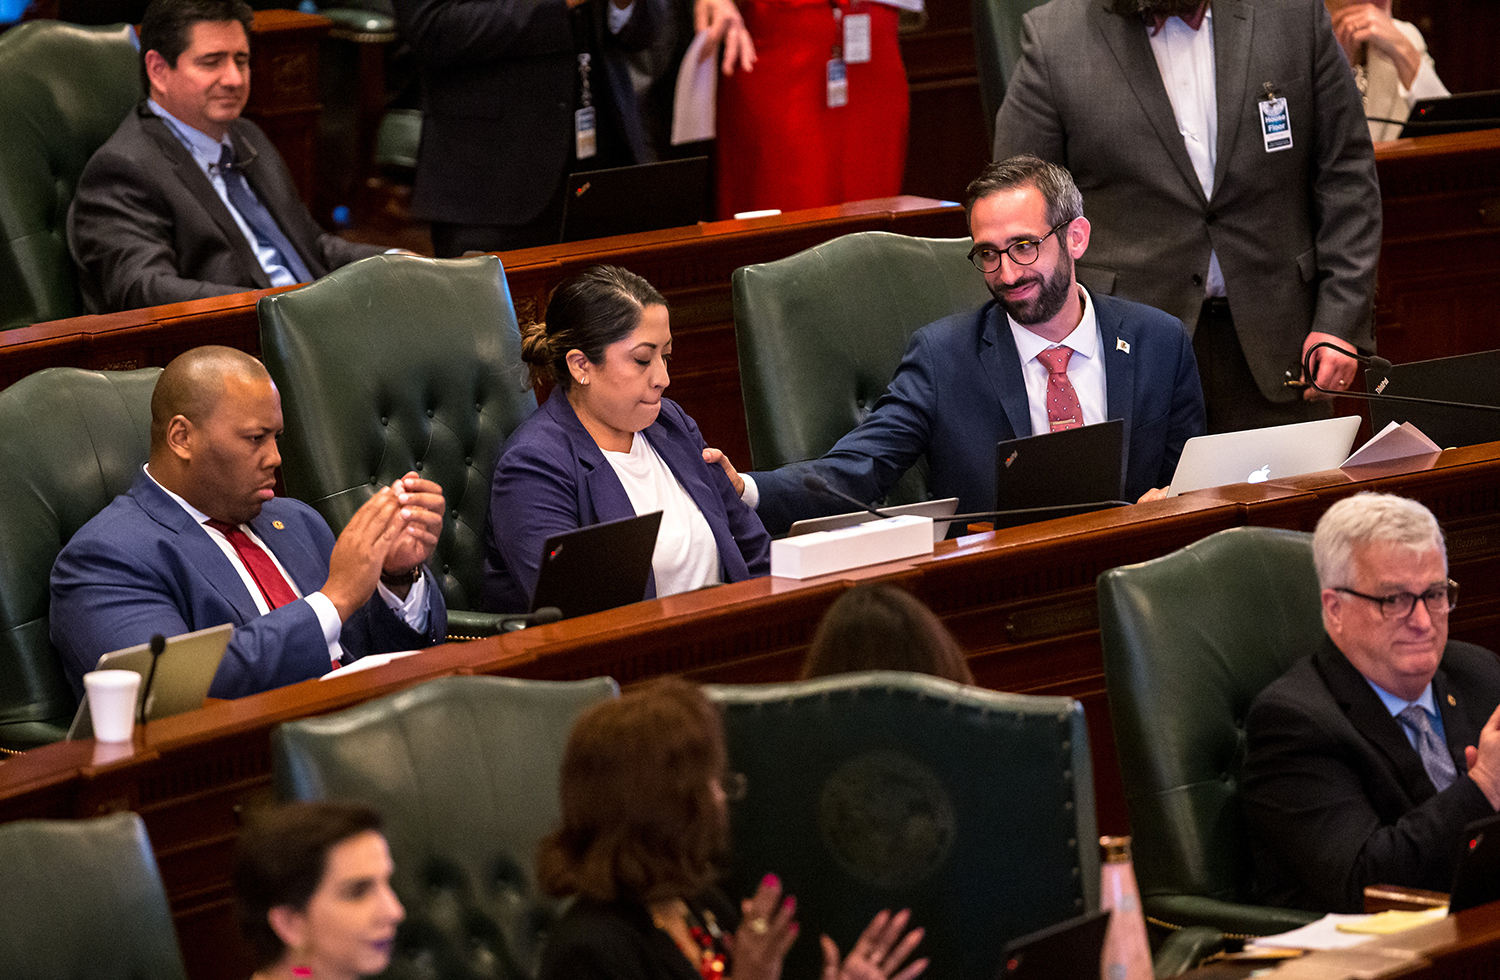 Illinois State Rep. Will Guzzardi, D-Chicago,, right, gives Illinois State Rep. Celina Villanueva, D-Chicago, a pat on the shoulder after she gave her remarks in support of Senate Bill 1, a bill to raise the minimum wage to $15 by 2025, citing the experience of her family working multiple jobs to get by during debate on the House floor at the Illinois State Capitol, Thursday, Feb. 14, 2019, in Springfield, Ill. [Justin L. Fowler/The State Journal-Register]